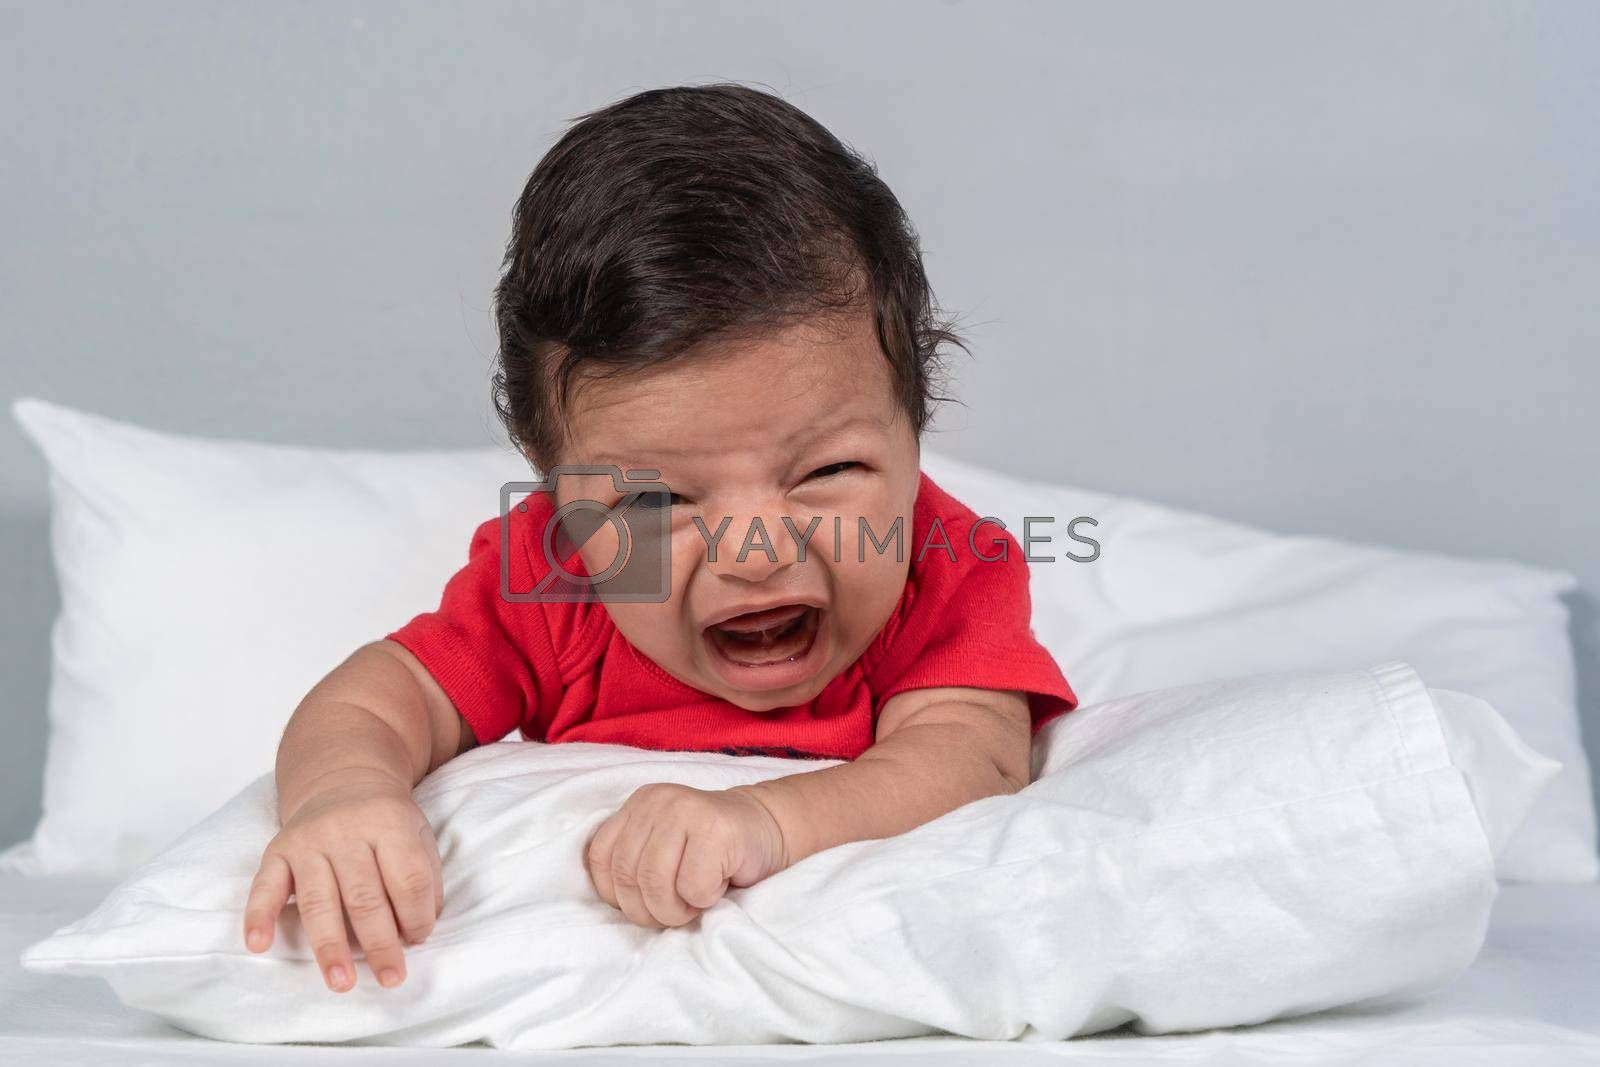 Royalty free image of Crying infant by jrivalta